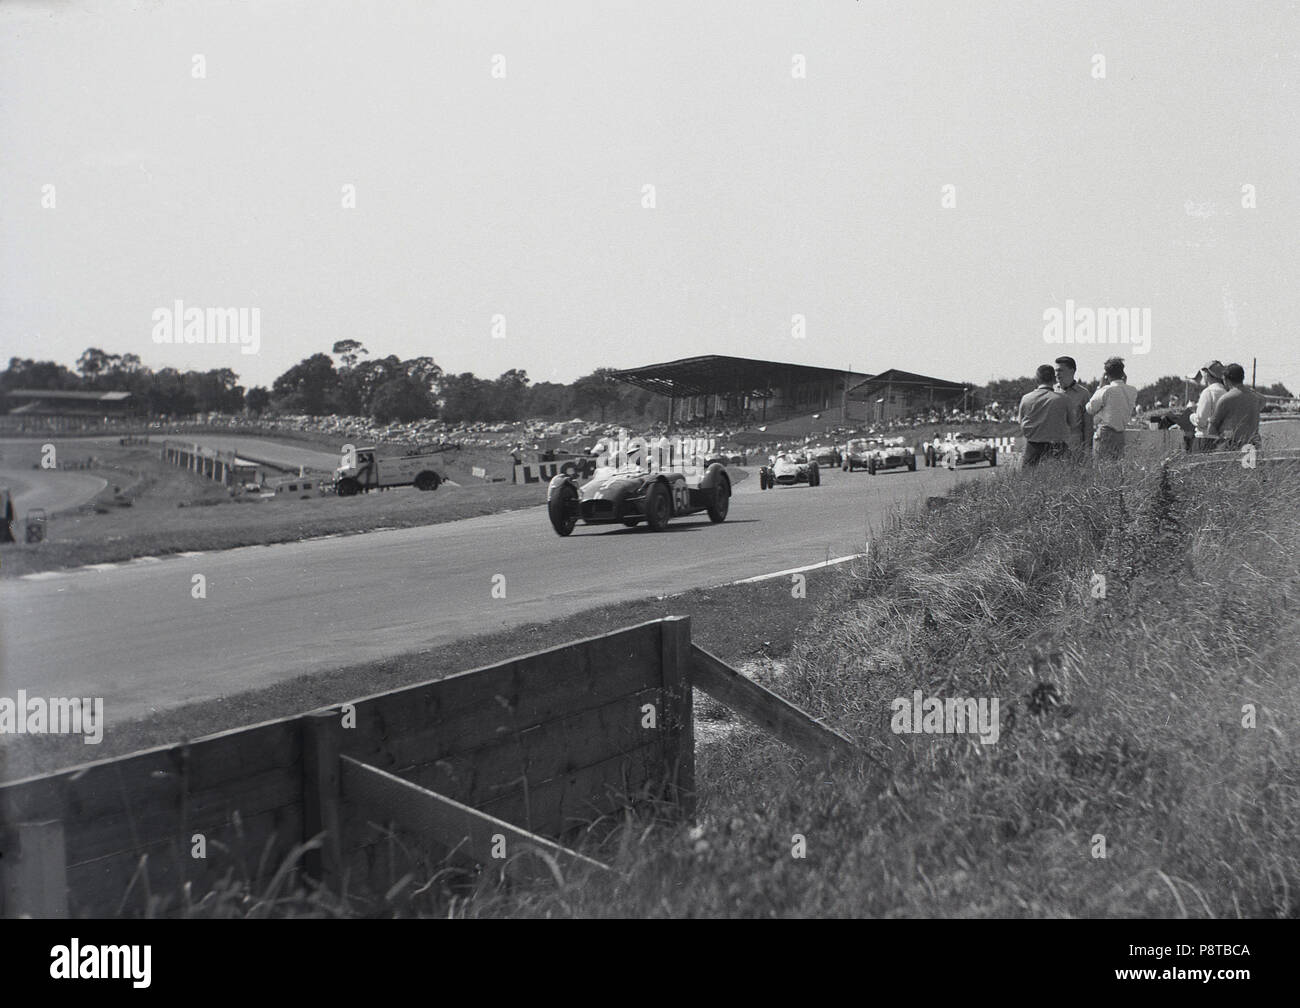 1950s, motor racing, single-seater open-wheel racing cars competing outside on a race track with spectators close to the action, England, UK. - Stock Image